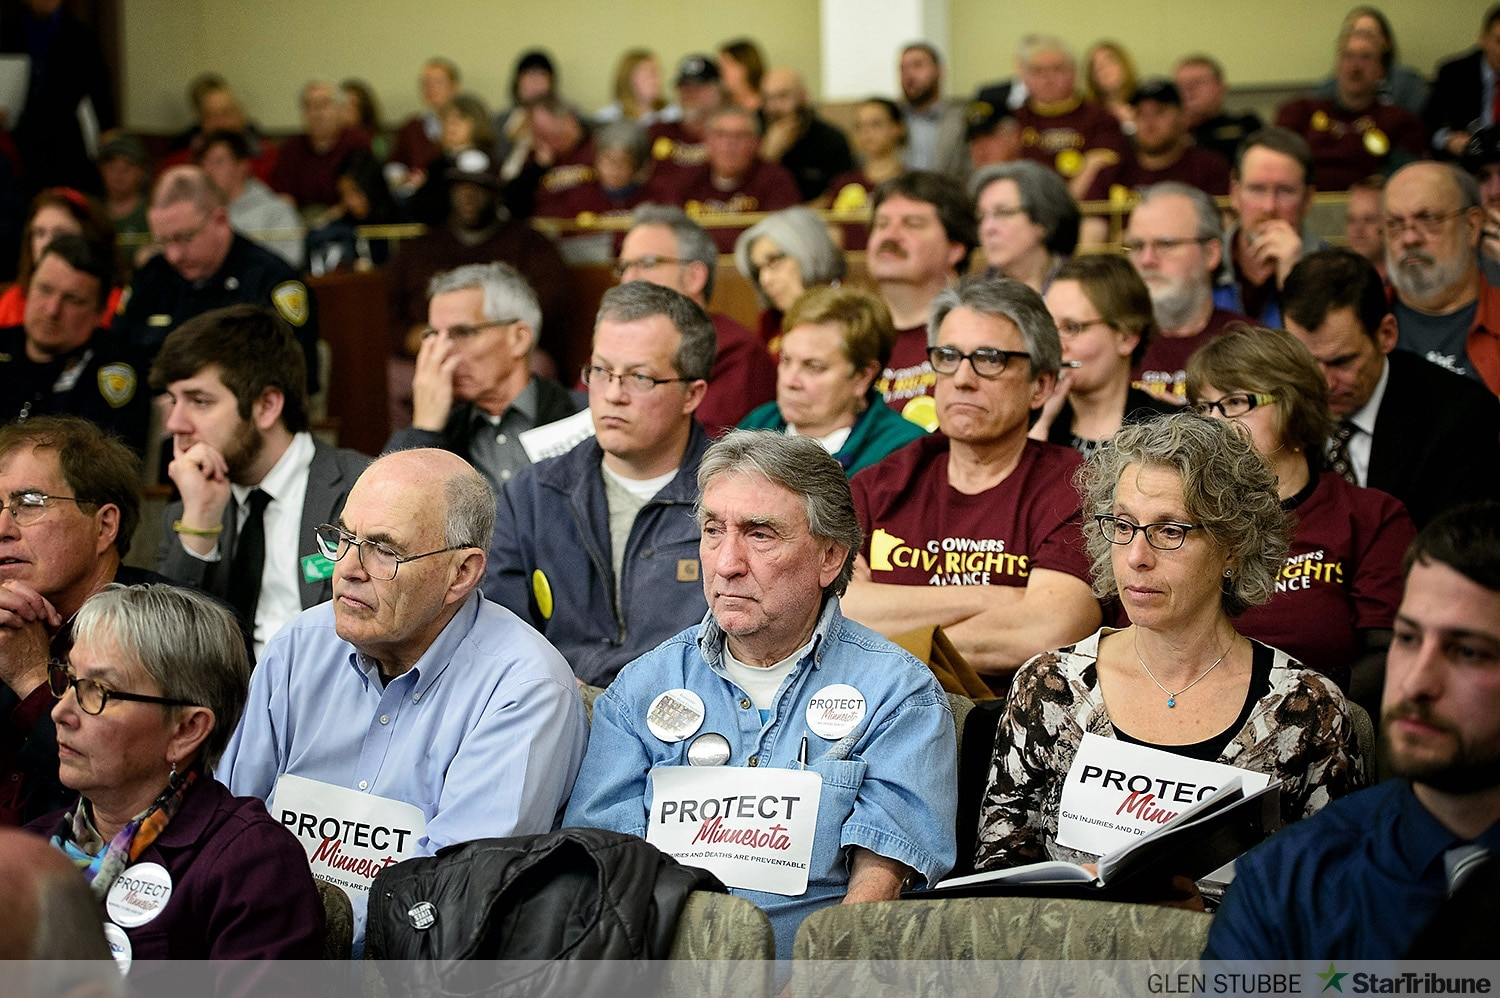 Gun rights and gun control advocates stocked the gallery during a hearing on legalizing federally compliant suppressors in Minnesota this week. (Photo: Glen Stubbe/Start Tribune)